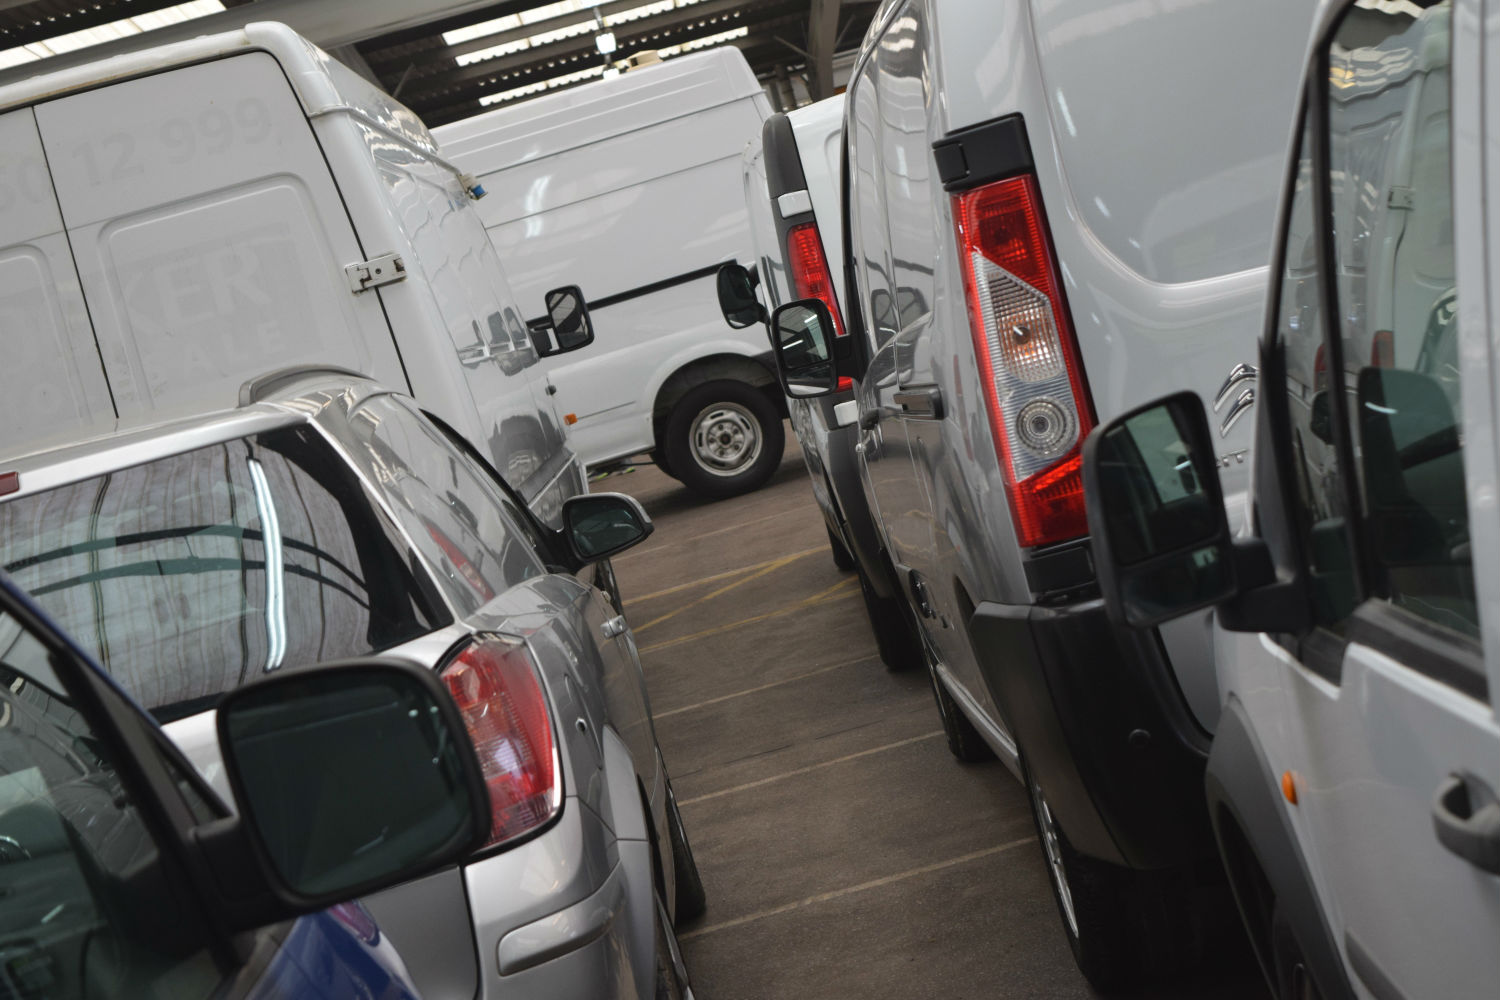 The UK's number one CV auction company, with commercial vehicles lined up for sale